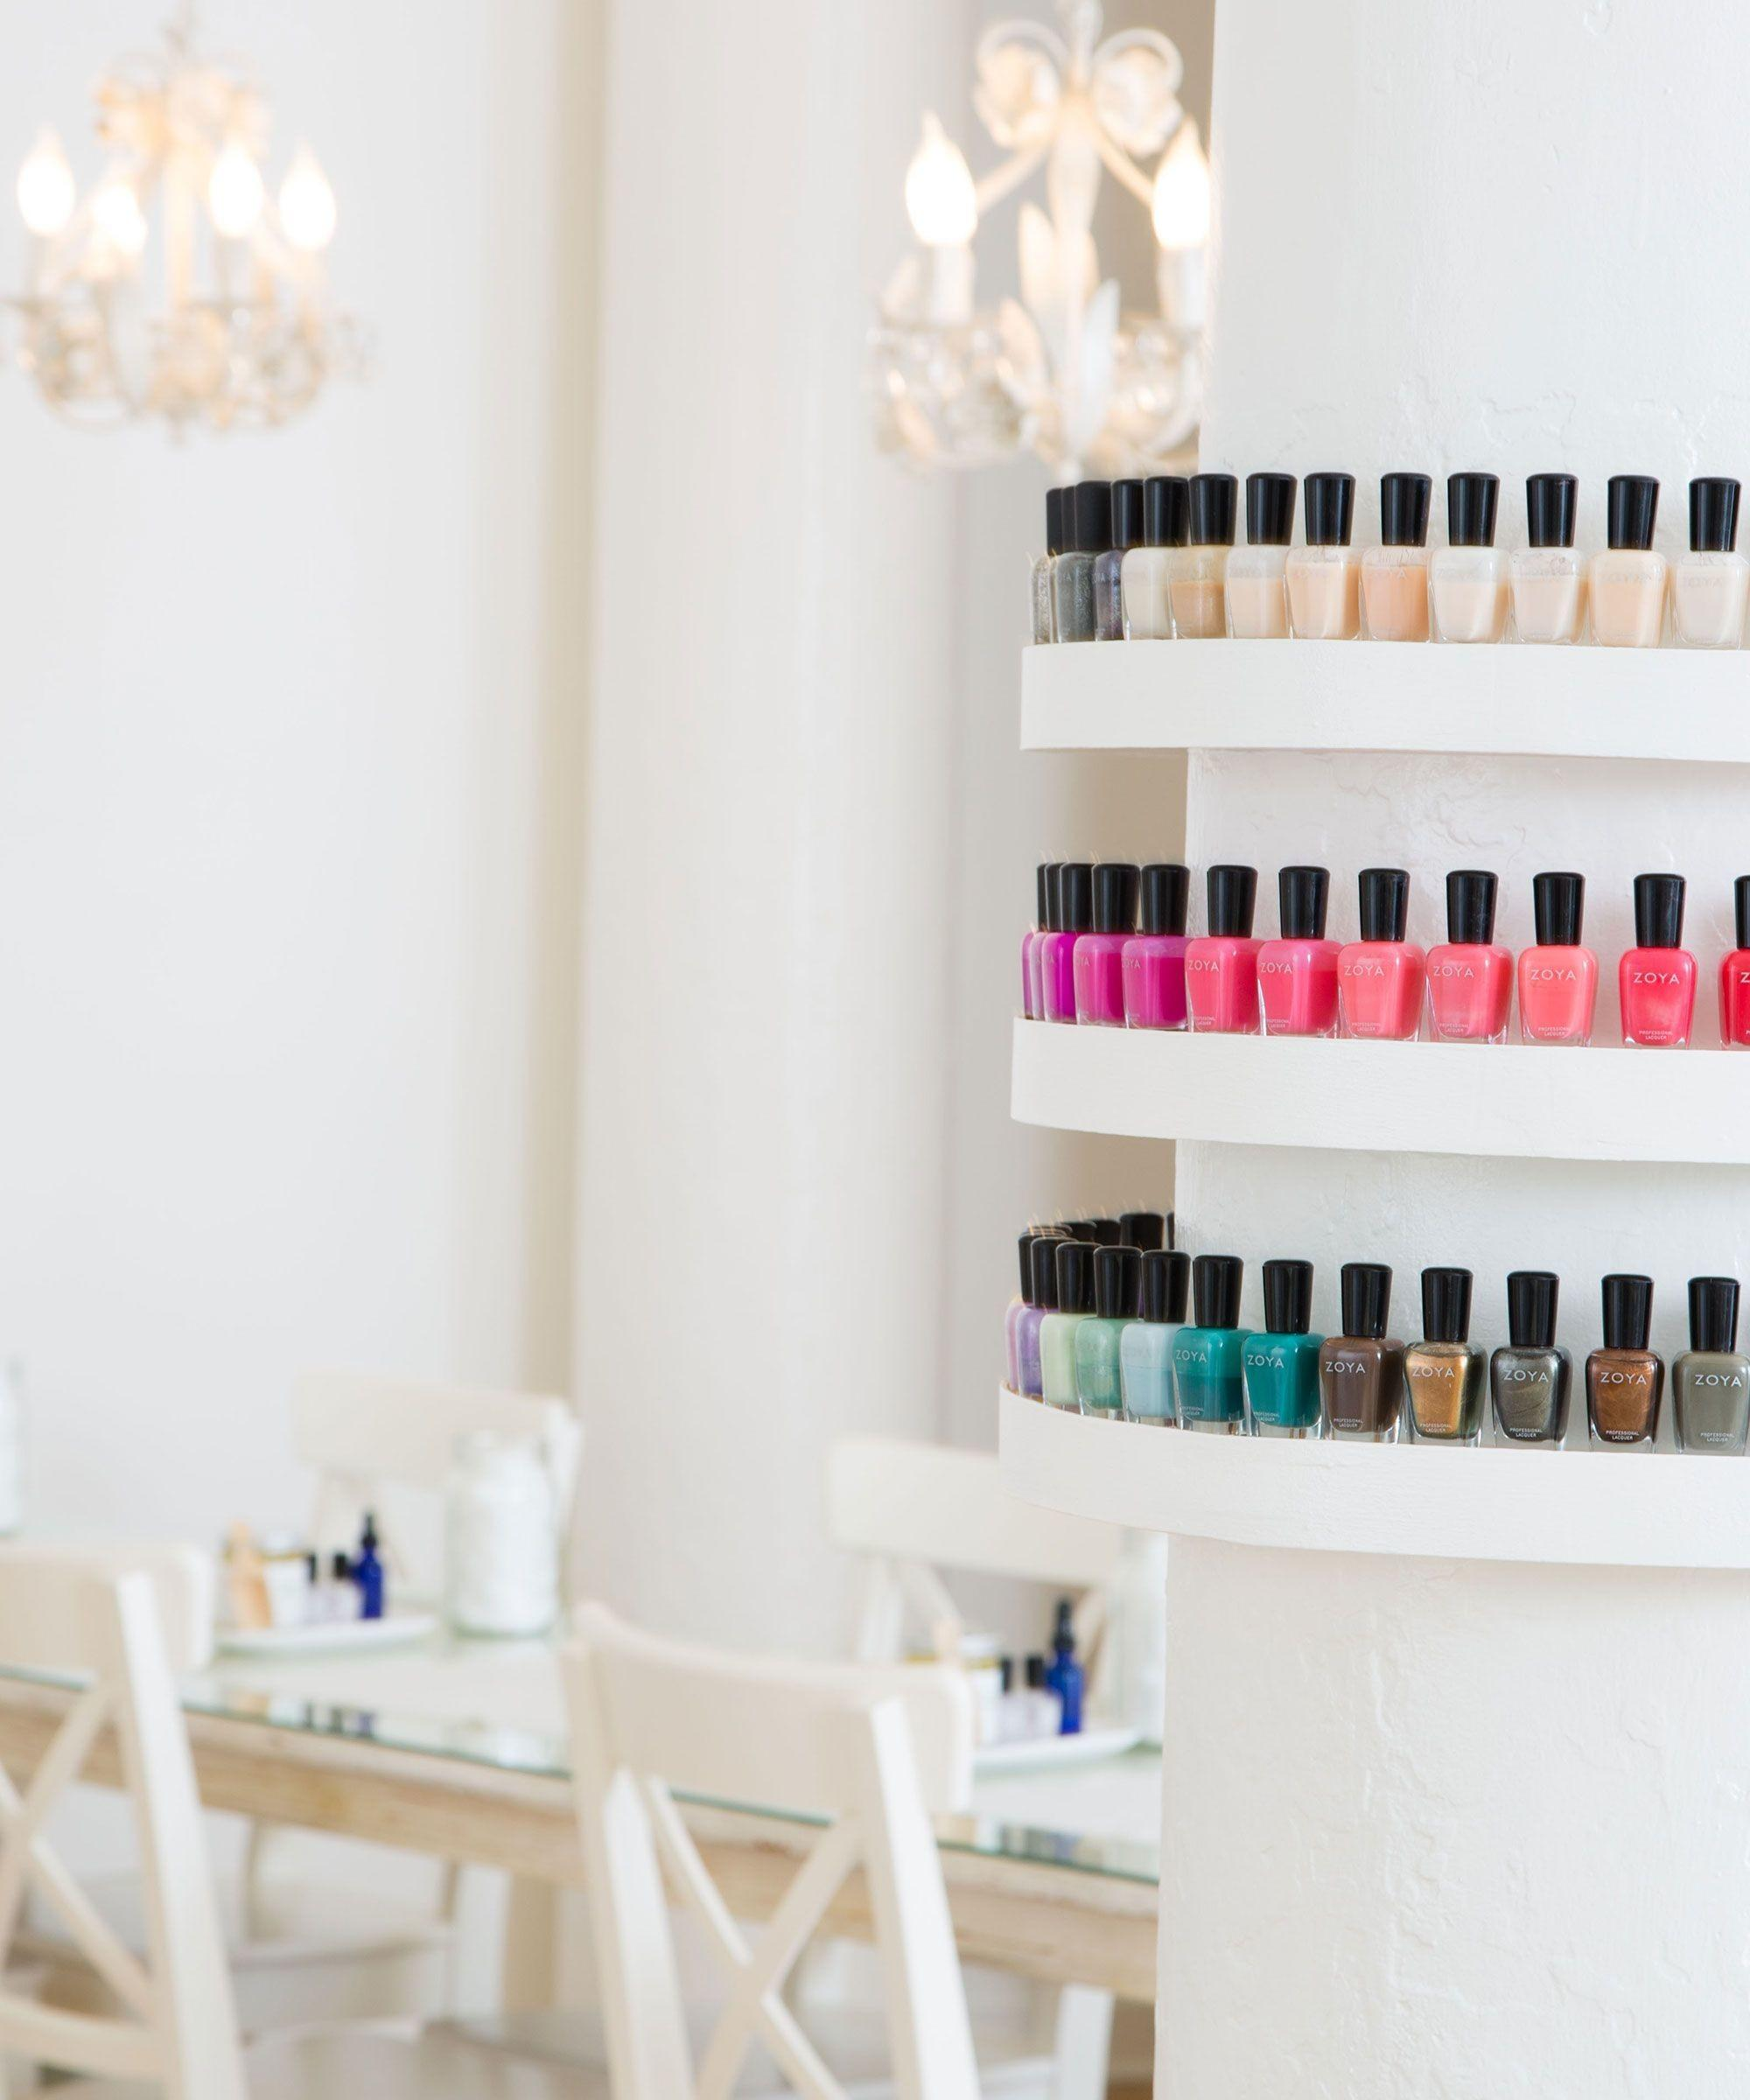 Best Nail Salons Nyc Manicure Pedicure New York